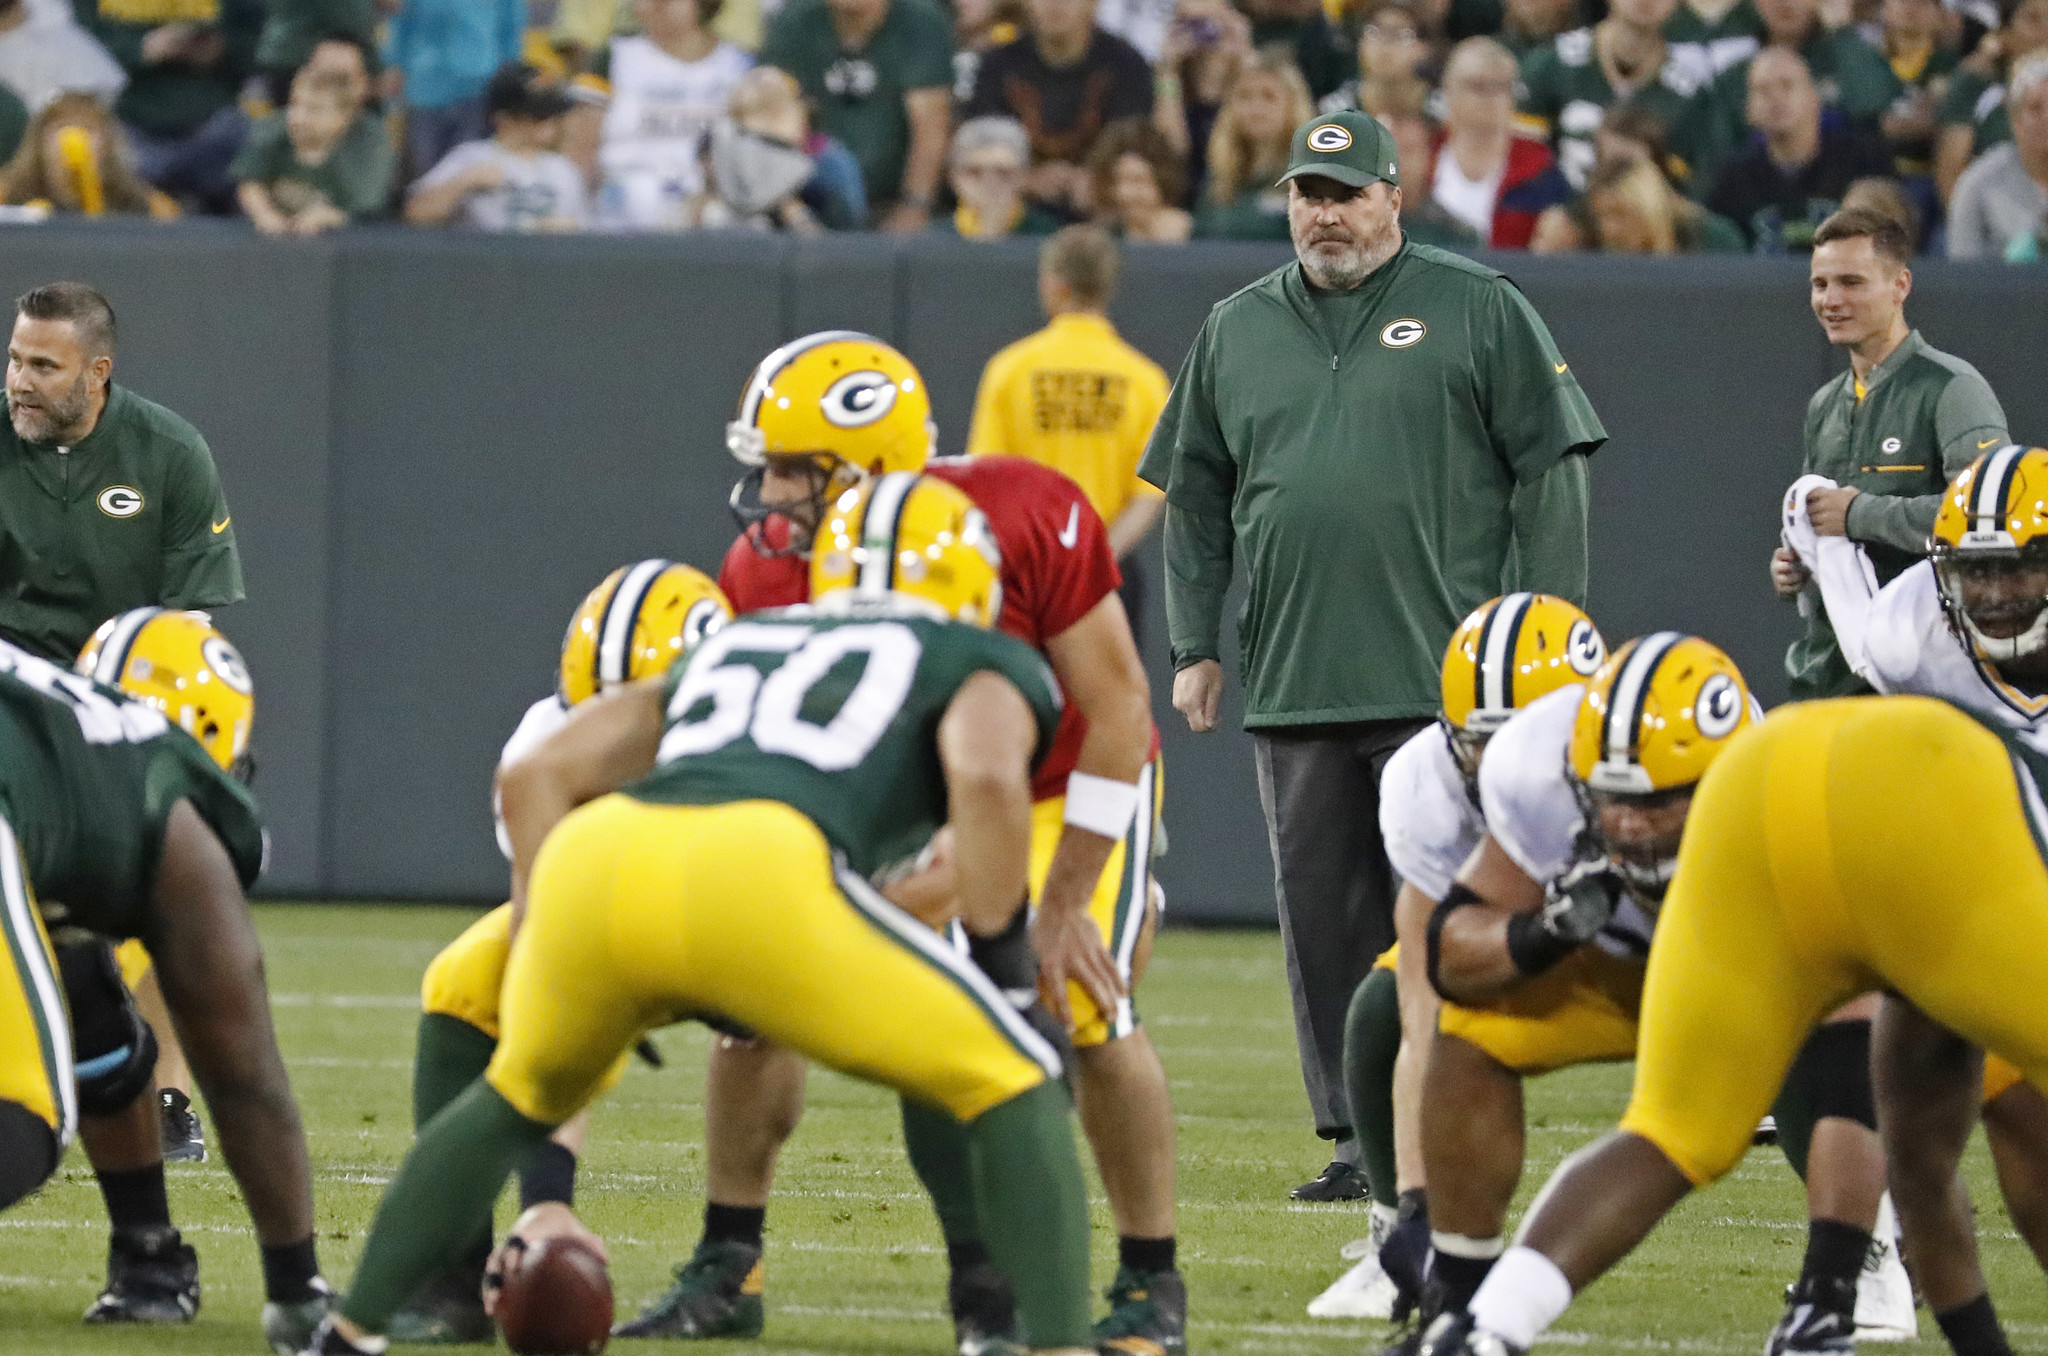 Ct-packers-nfc-north-biggs-spt-0820-20170819